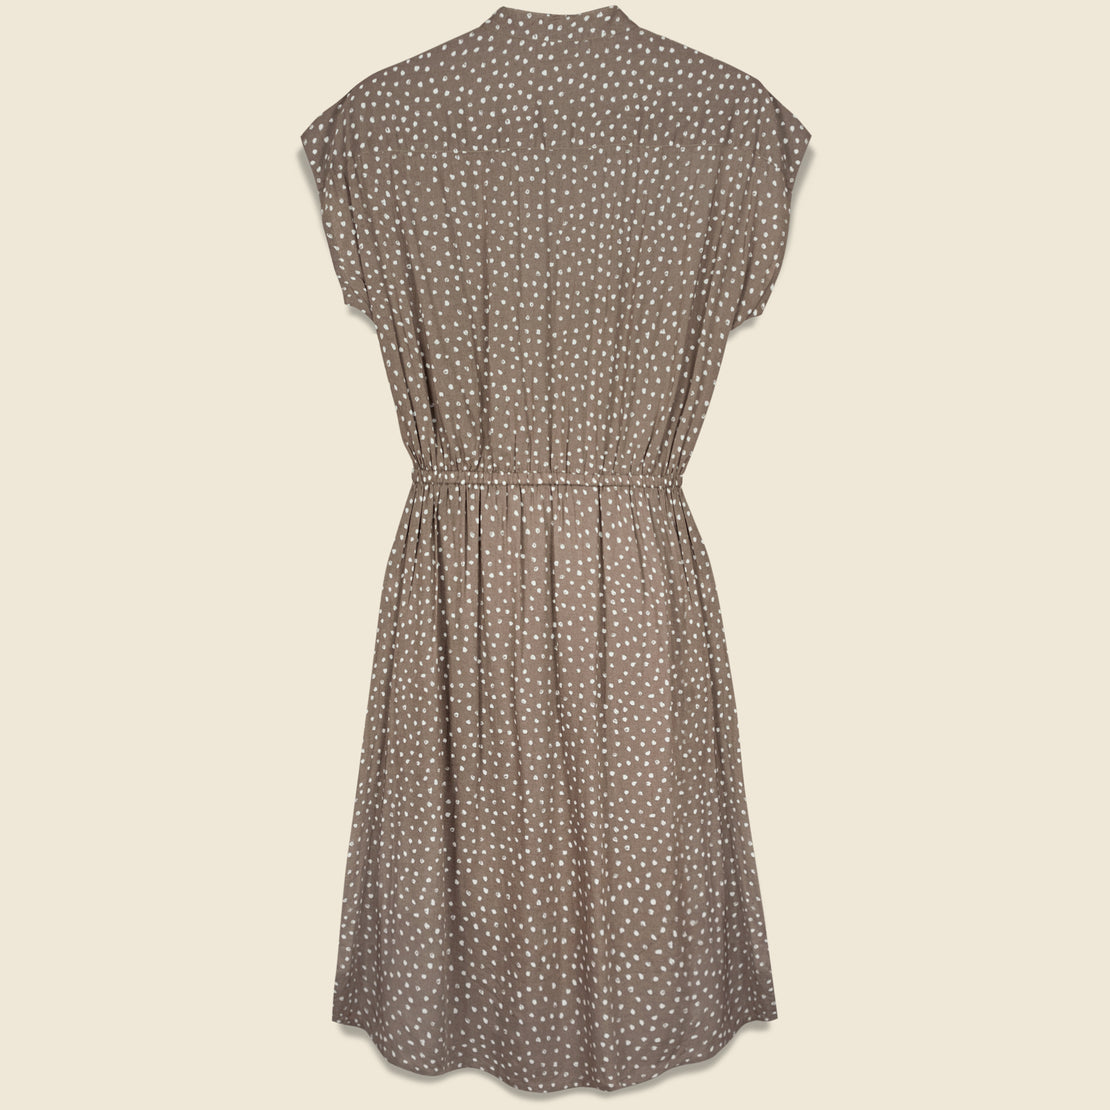 Lorane Dress - Tan Dot